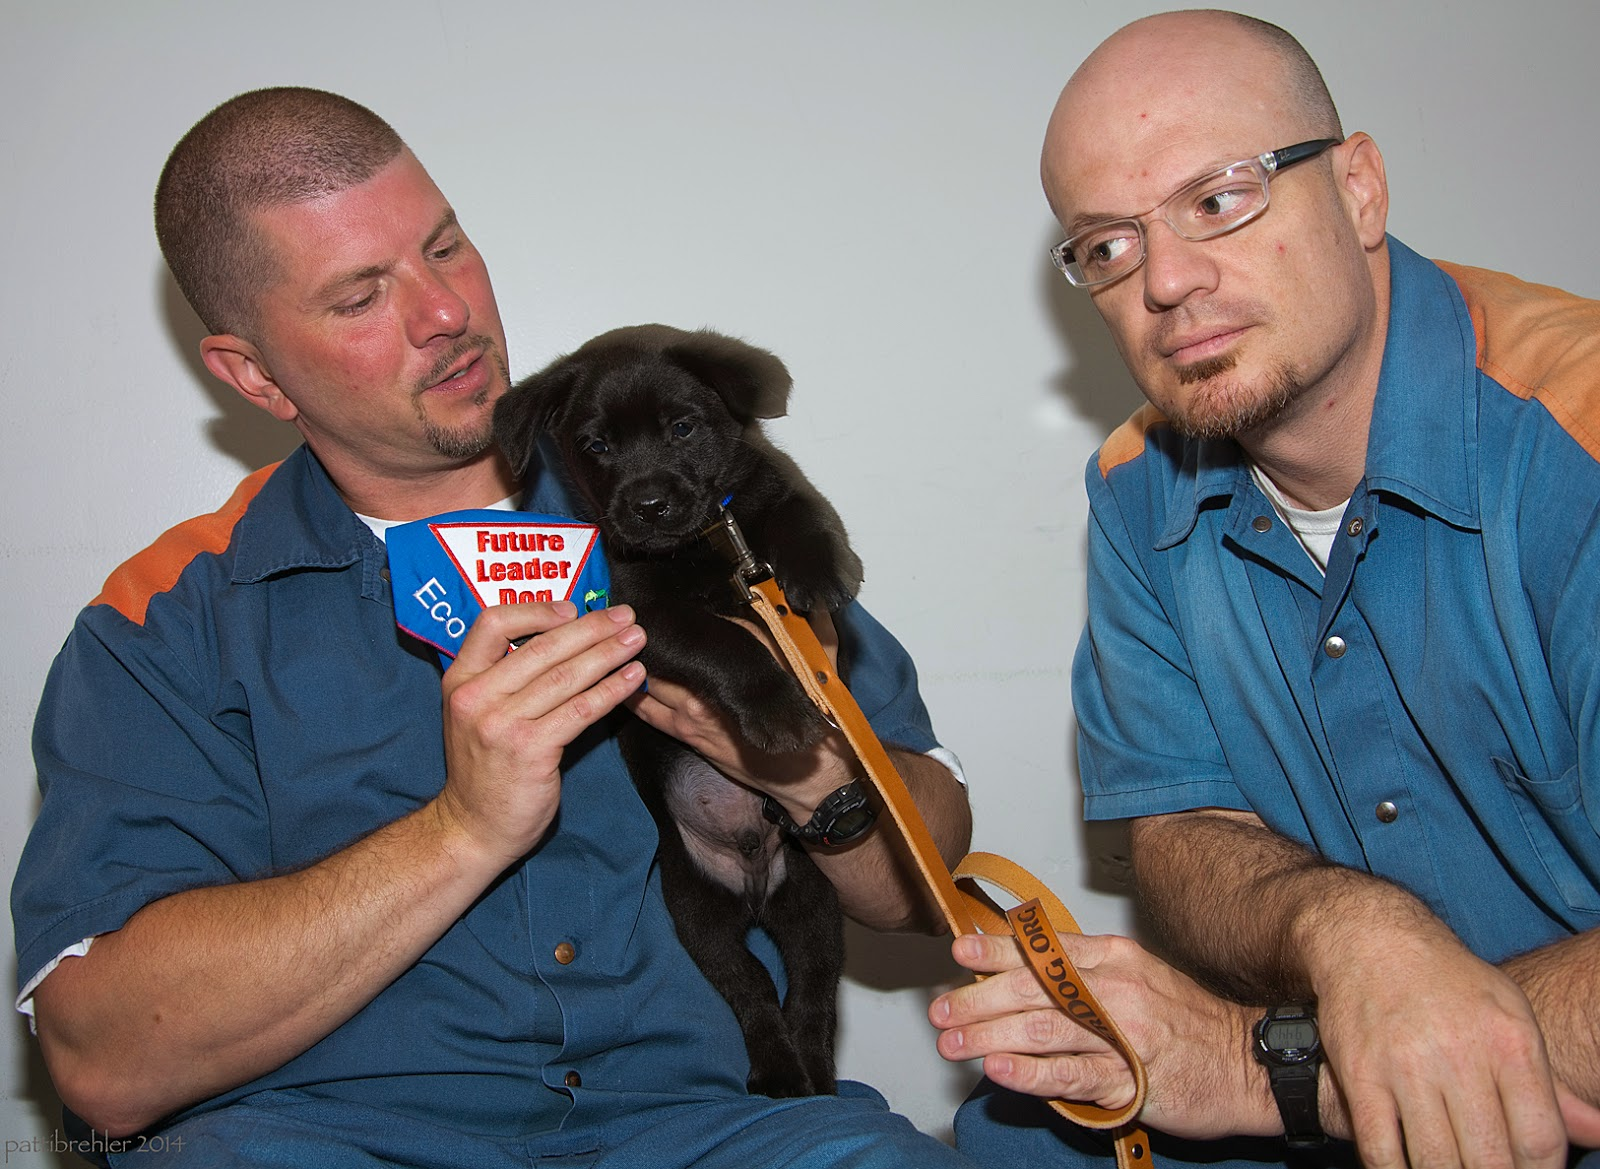 Two men dressed in blue prison uniforms sit with a small black lab puppy. The man on the left is holding the puppy in his left hand against his chest. With his right hand he is holding the blue Future Leader Dog bandana that is embroidered with the puppy's name, Eco. A brown leash is hanging down from the puppy's collar and is held by the man on the right with his left hand. This man's right hand is draped over his left forearm. The man on the right is wearing glasses and is looking toward the puppy. The man on the left is also looking at the puppy. The puppy is the only one looking at the camera!